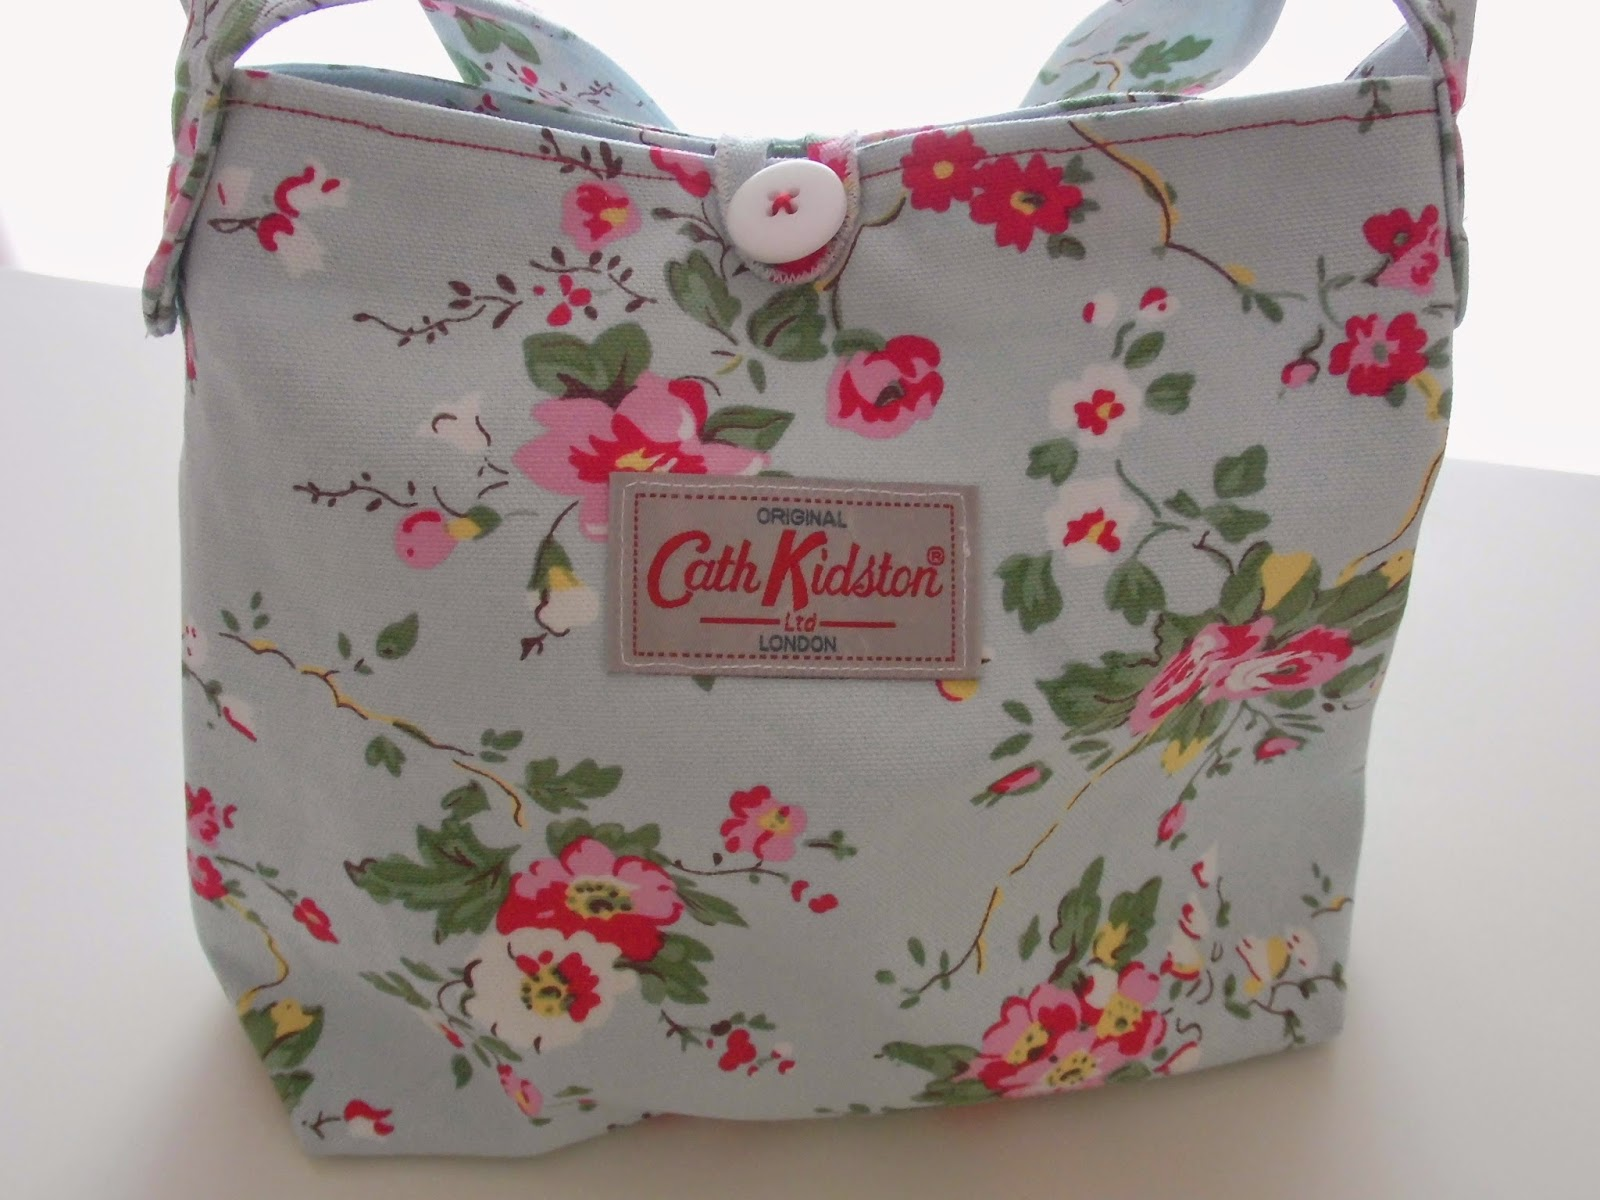 cath kidston tasche. Black Bedroom Furniture Sets. Home Design Ideas